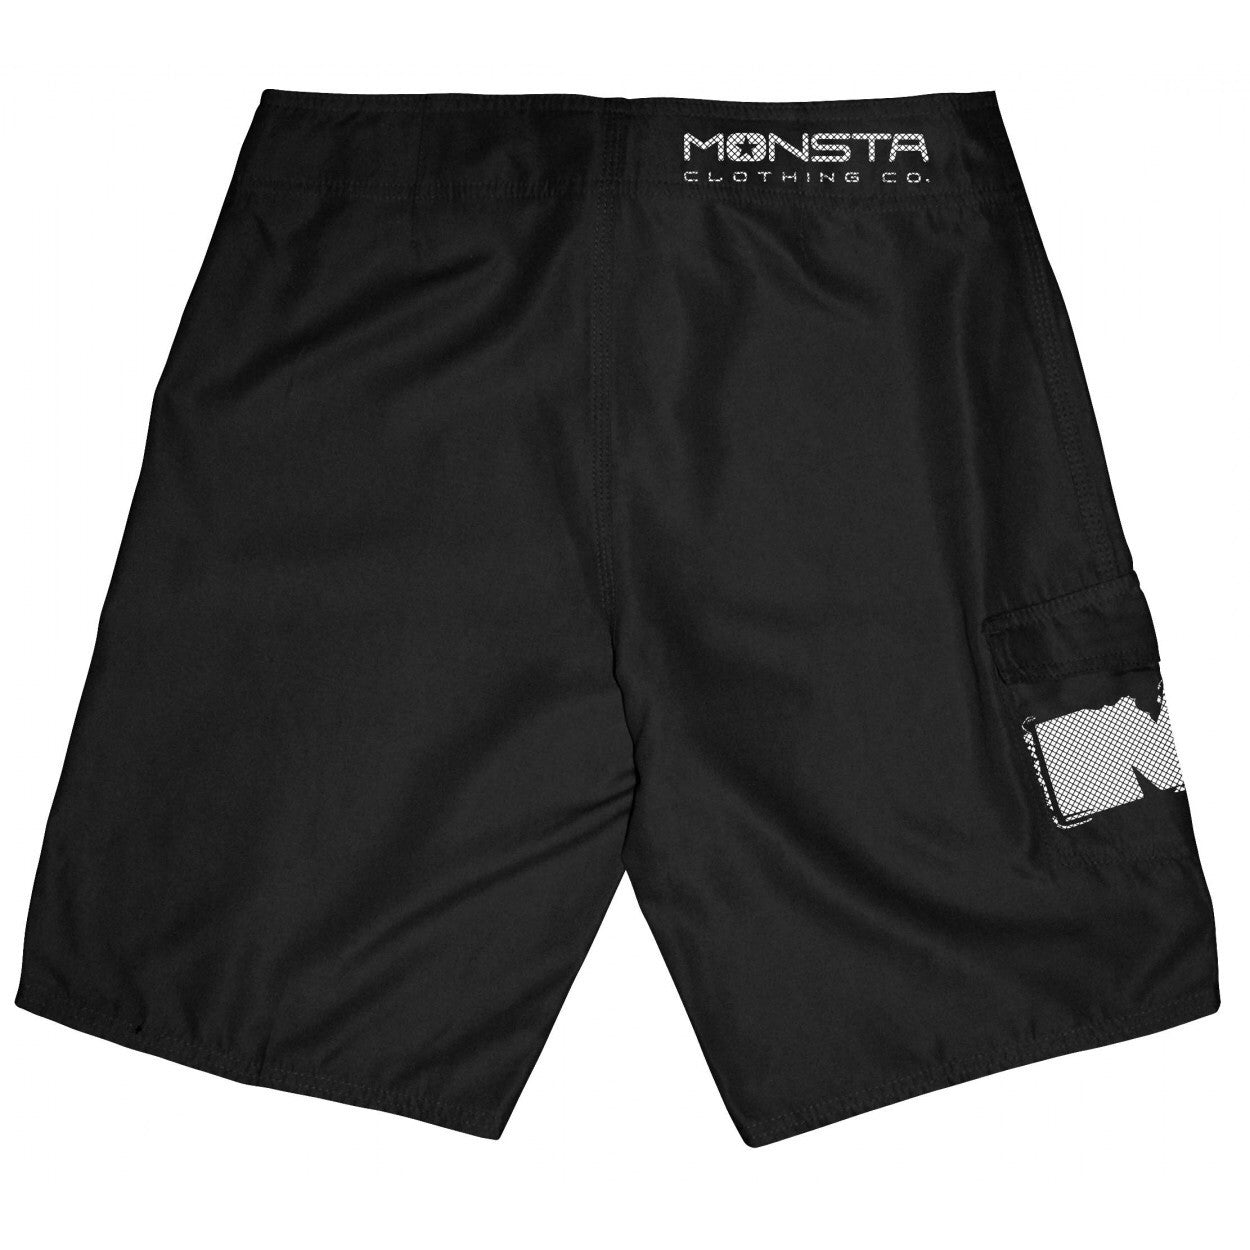 SHORTS: BOARD SHORTS -265 - Monsta Clothing Australia